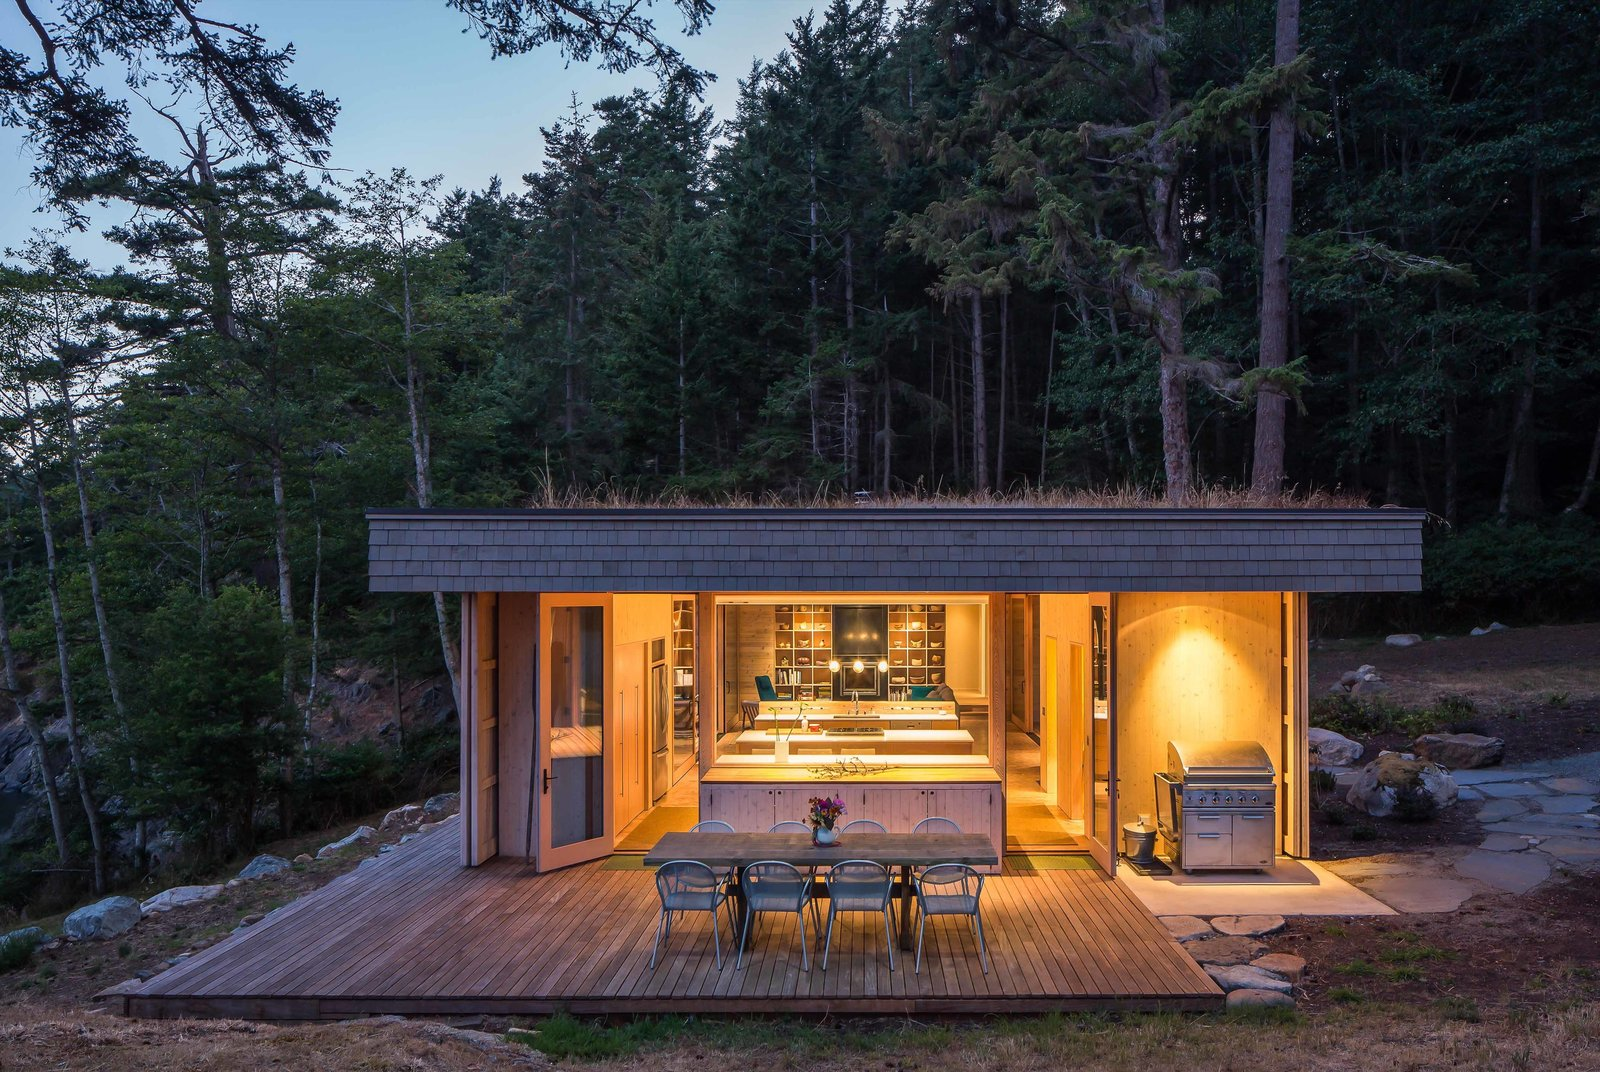 """Wood Patio, Porch, Deck, Large Patio, Porch, Deck, Exterior, Back Yard, House Building Type, Green Roof Material, Wood Siding Material, Cabin Building Type, and Flat RoofLine One of the main goals of the construction was to do as little harm as possible to the existing environment, which includes waterways that salmon depend upon. Herrin and his team created a garden roof that covers the full extent of the home to meet this objective. """"This helps control storm water runoff and also replaces lost insect habitat—insects being a critical food source for juvenile salmon,"""" he says.  Photo 99 of 101 in 101 Best Modern Cabins from San Juan Islands Residence"""